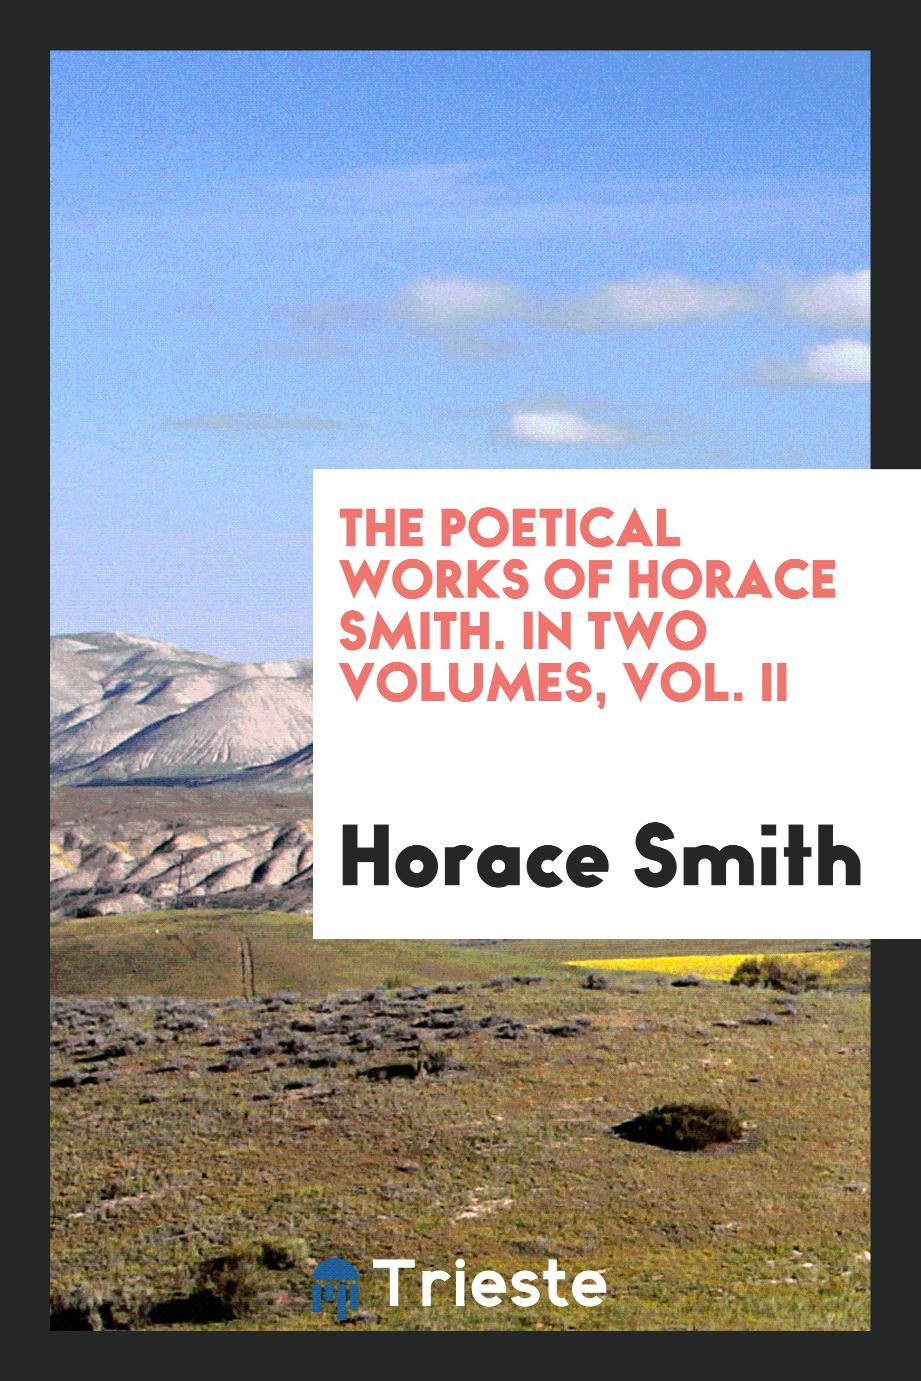 The Poetical Works of Horace Smith. In Two Volumes, Vol. II